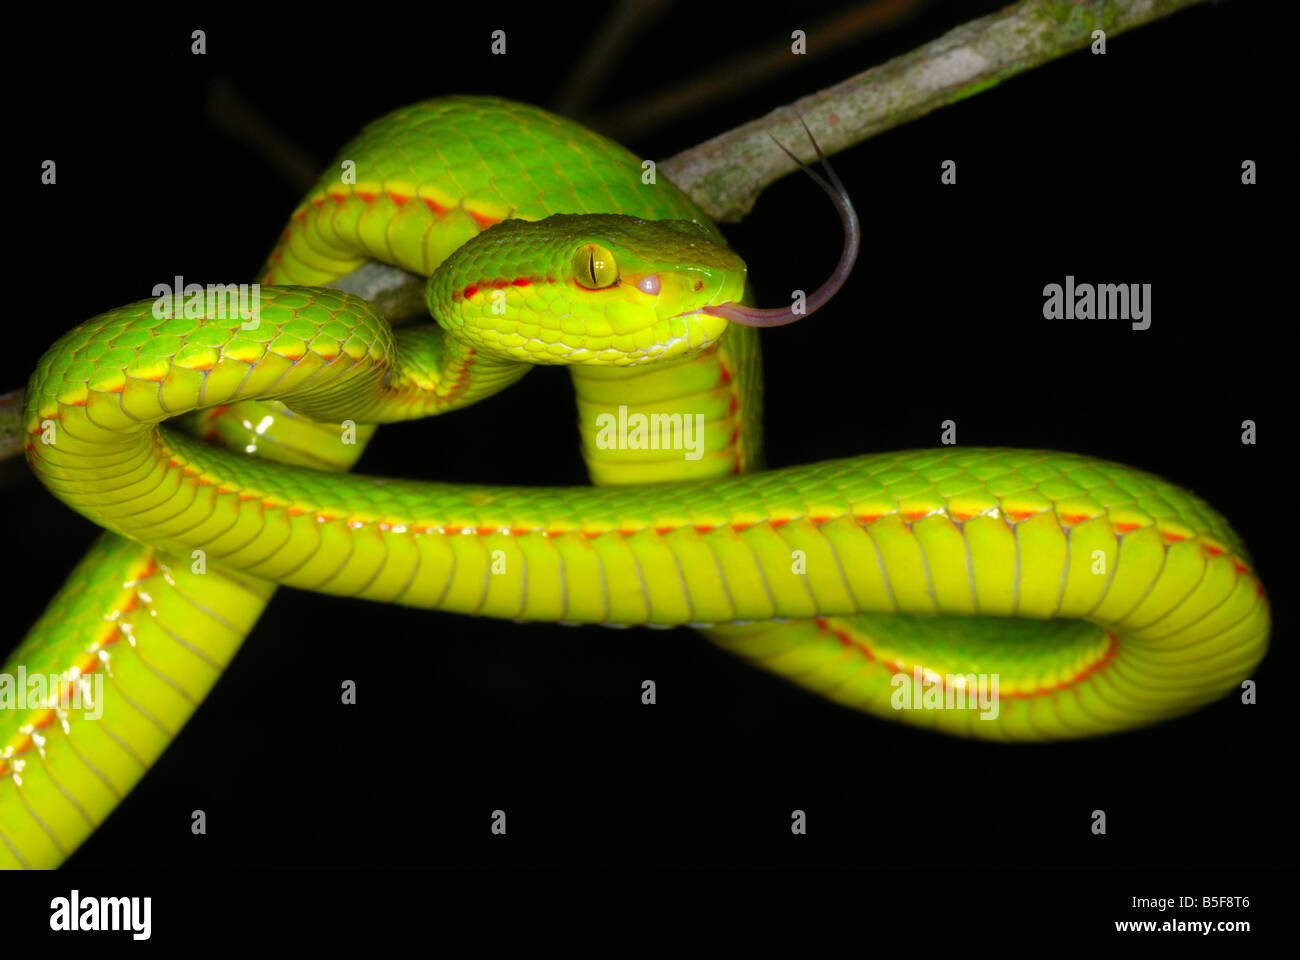 pope s pit viper trimeresurus popeiorum venomous uncommon pope s pit viper trimeresurus popeiorum venomous uncommon generally encountered at night above an elevation of